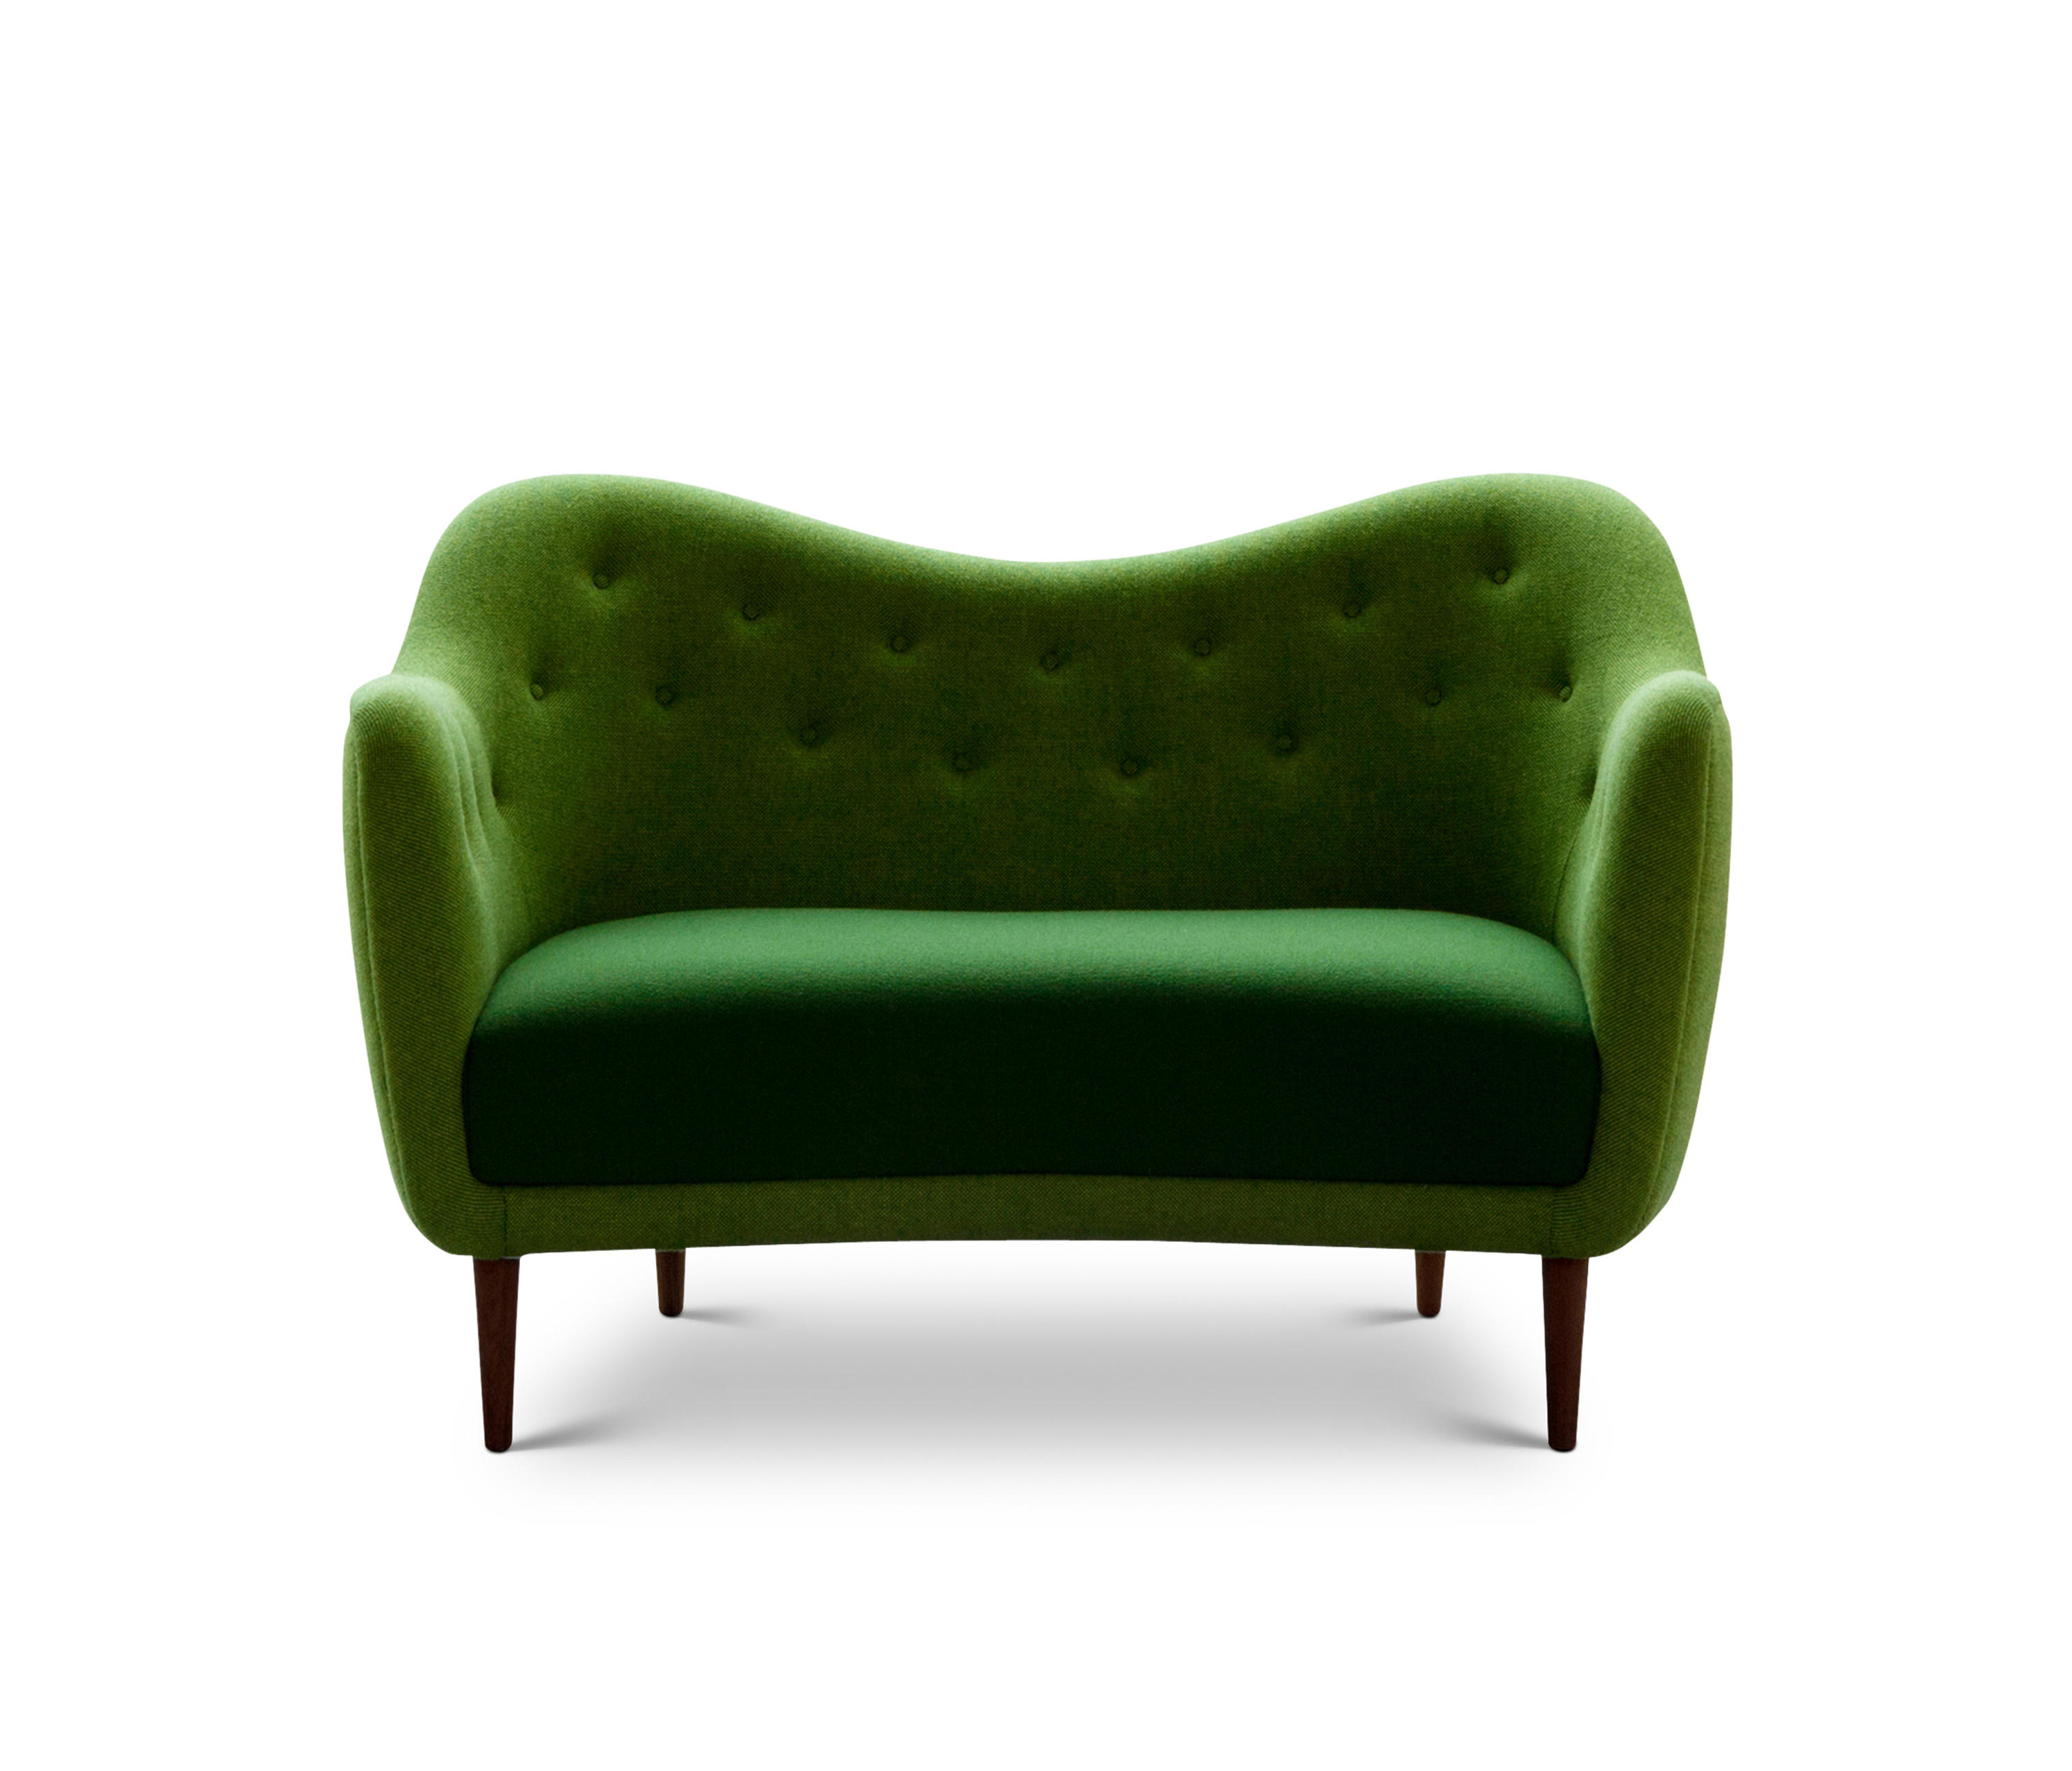 46 Sofa By House Of Finn Juhl Onecollection Sofas